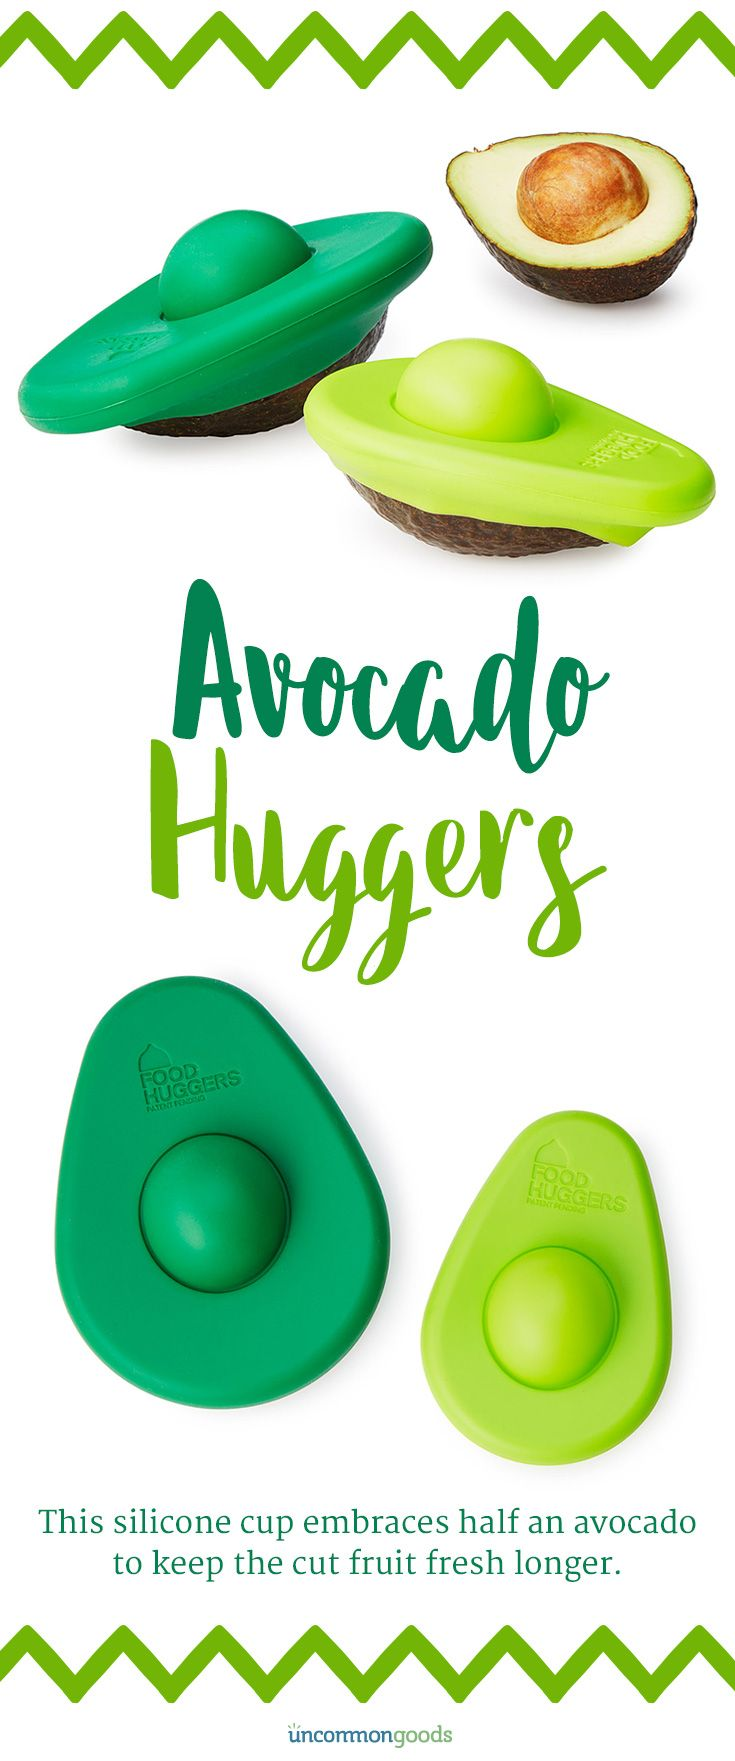 This silicone cup embraces half an avocado to keep the cut fruit fresh longer. Maybe something for https://Addgeeks.com ?